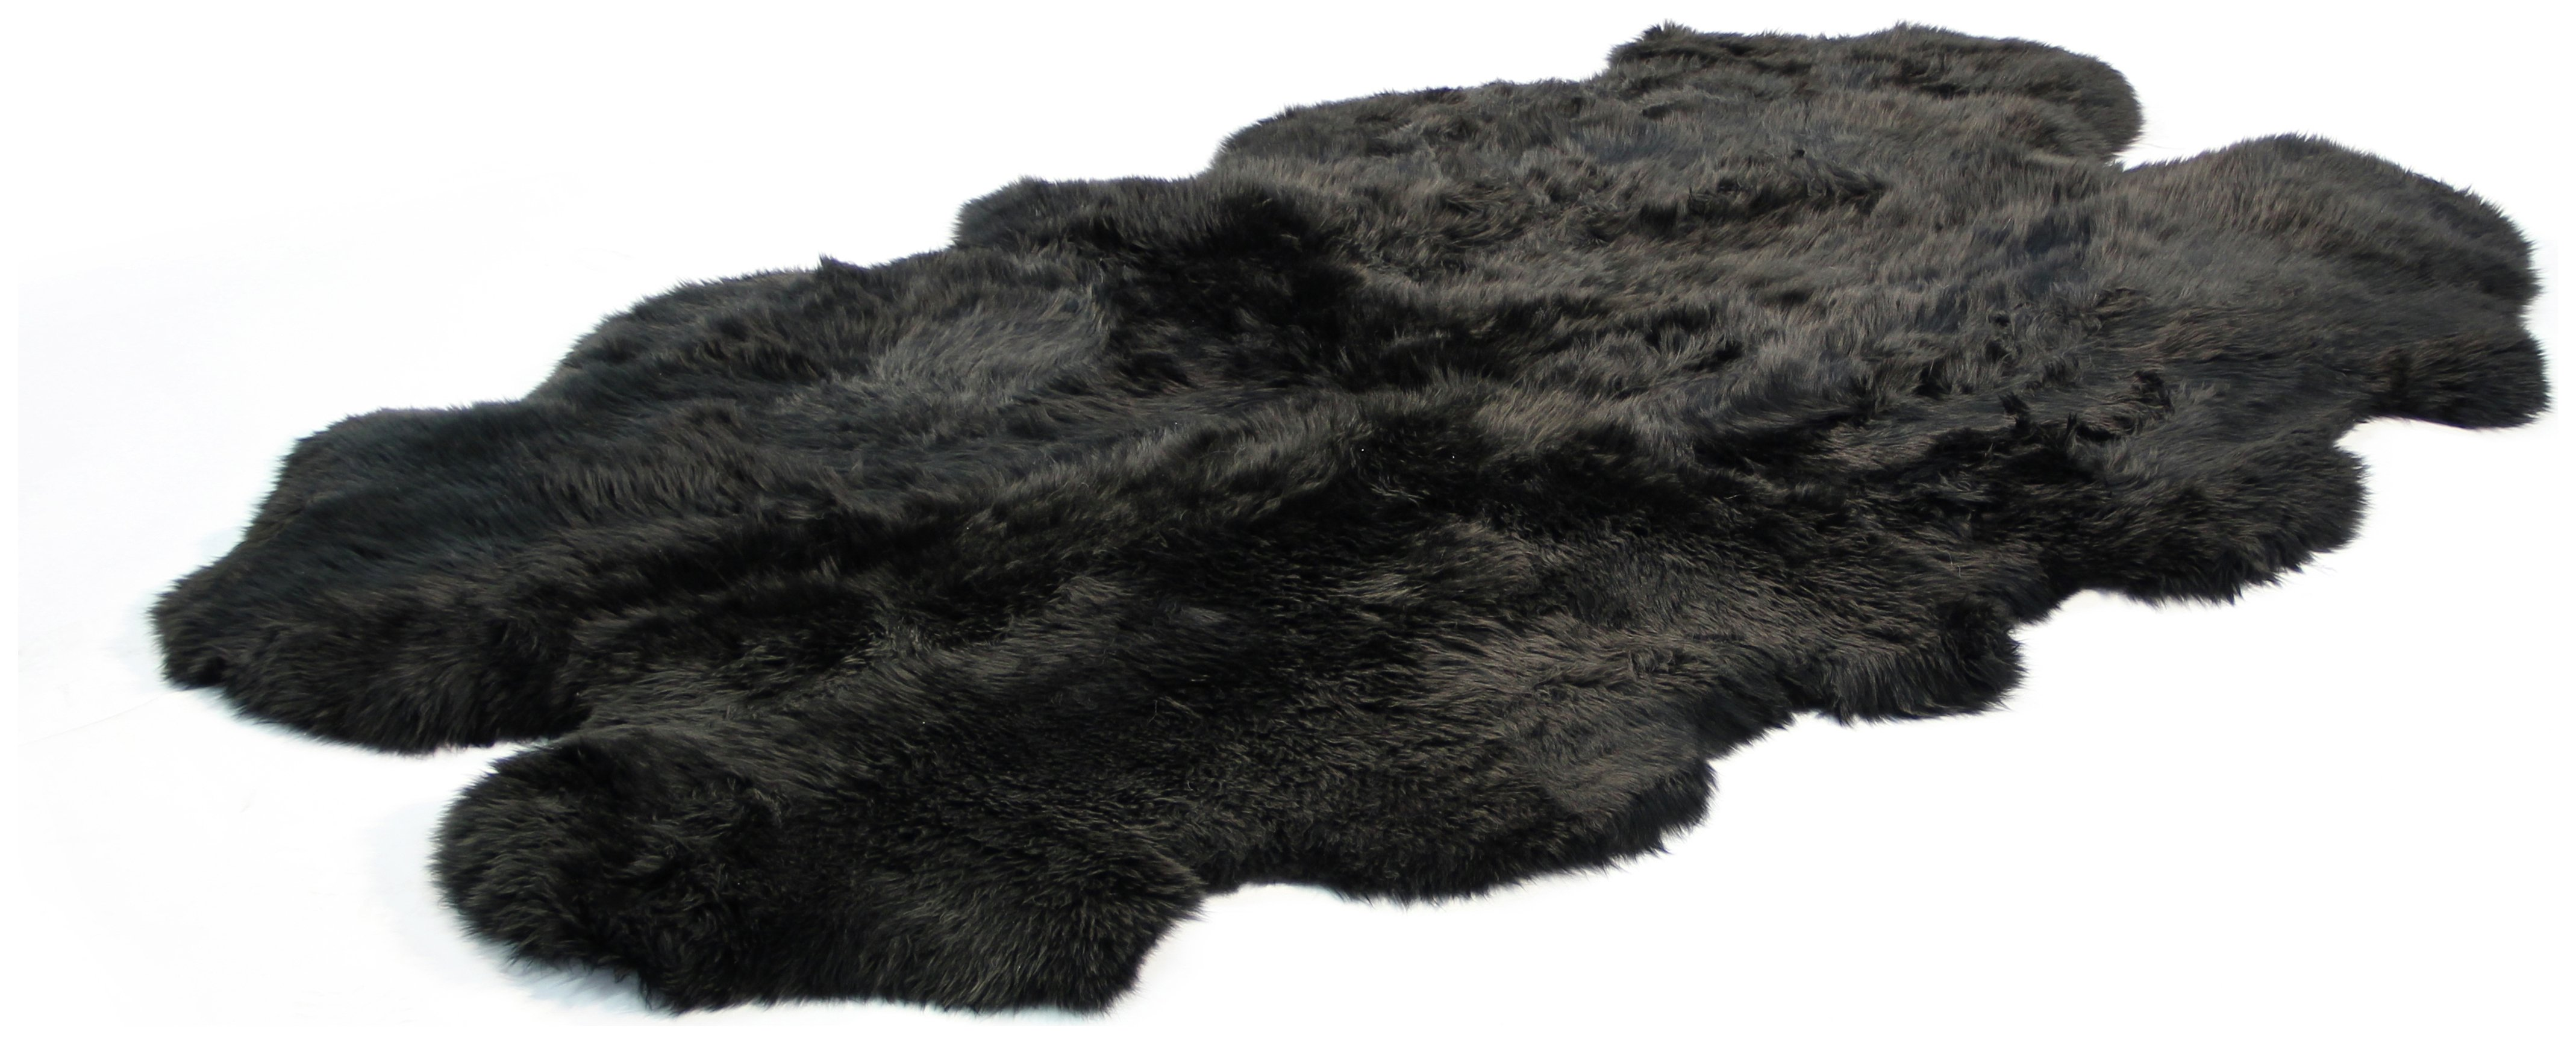 Image of Bowron Sheepskin Longwool Rug 180 x 110cm - Black.